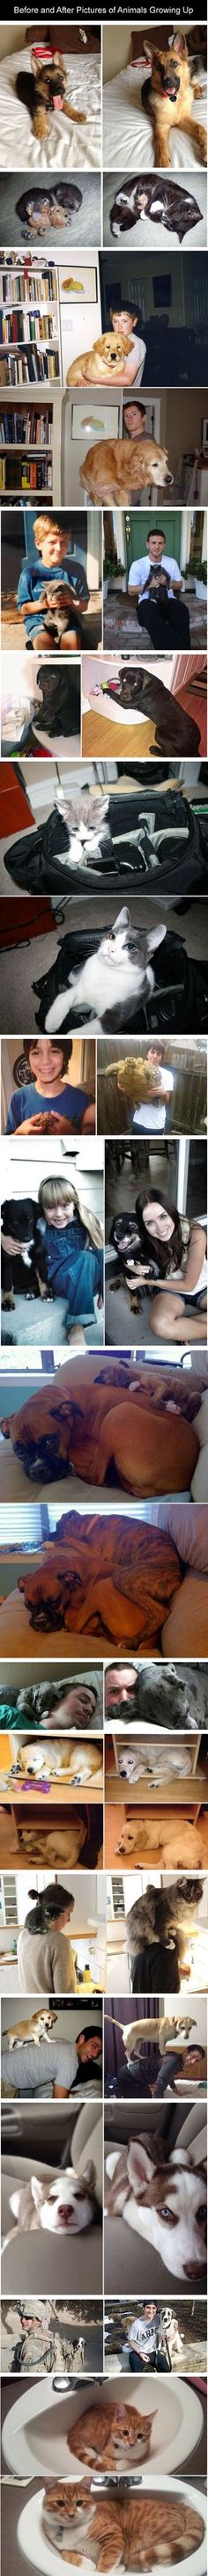 Before and After Pictures of Animals Growing Up